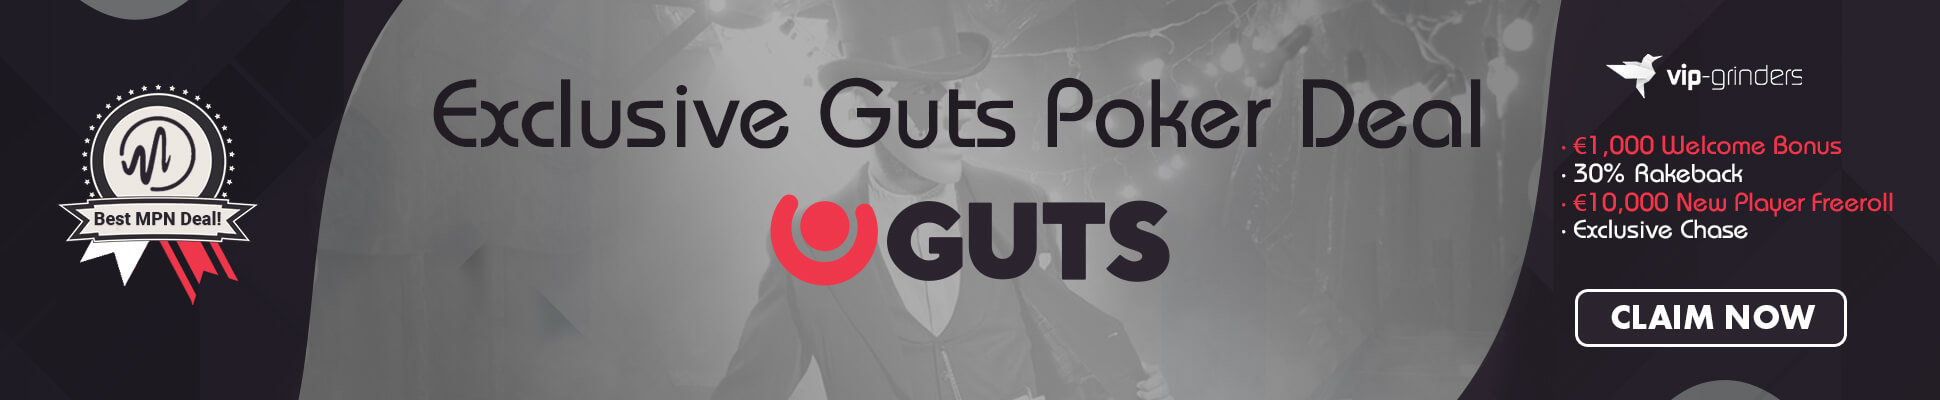 guts-poker-slider-1